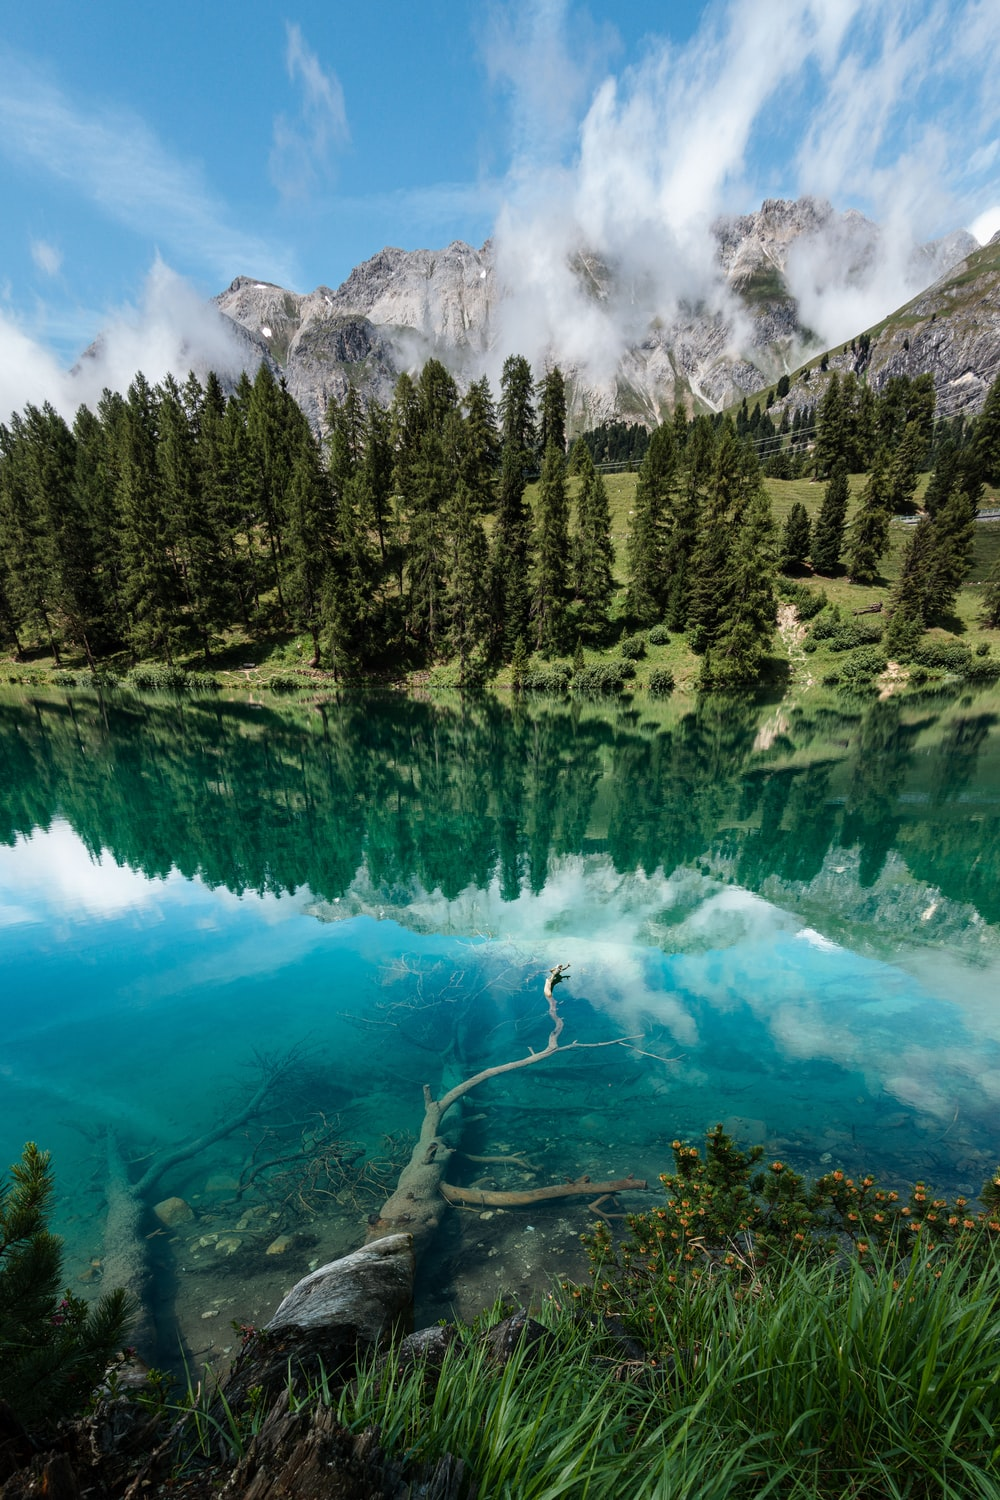 photography of lake surrounded by pine trees during daytime